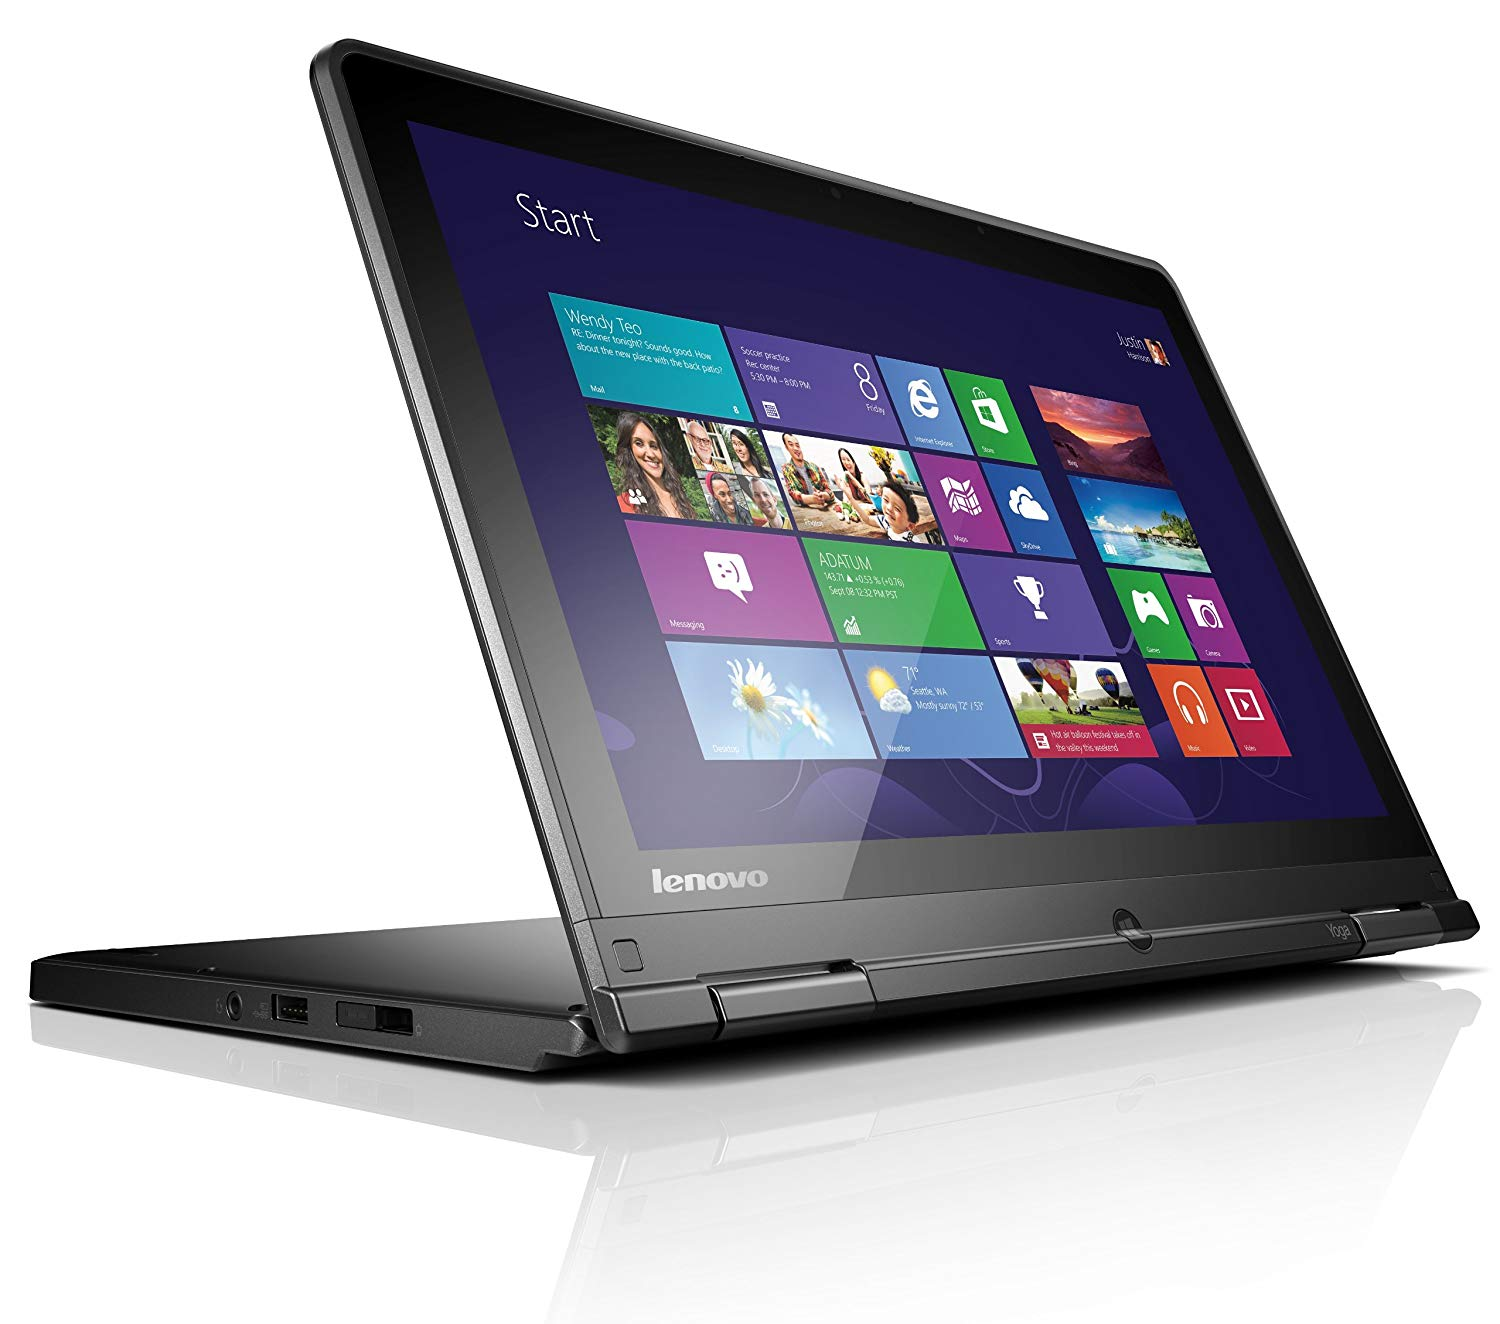 Lenovo Thinkpad S1 Yoga 12.5